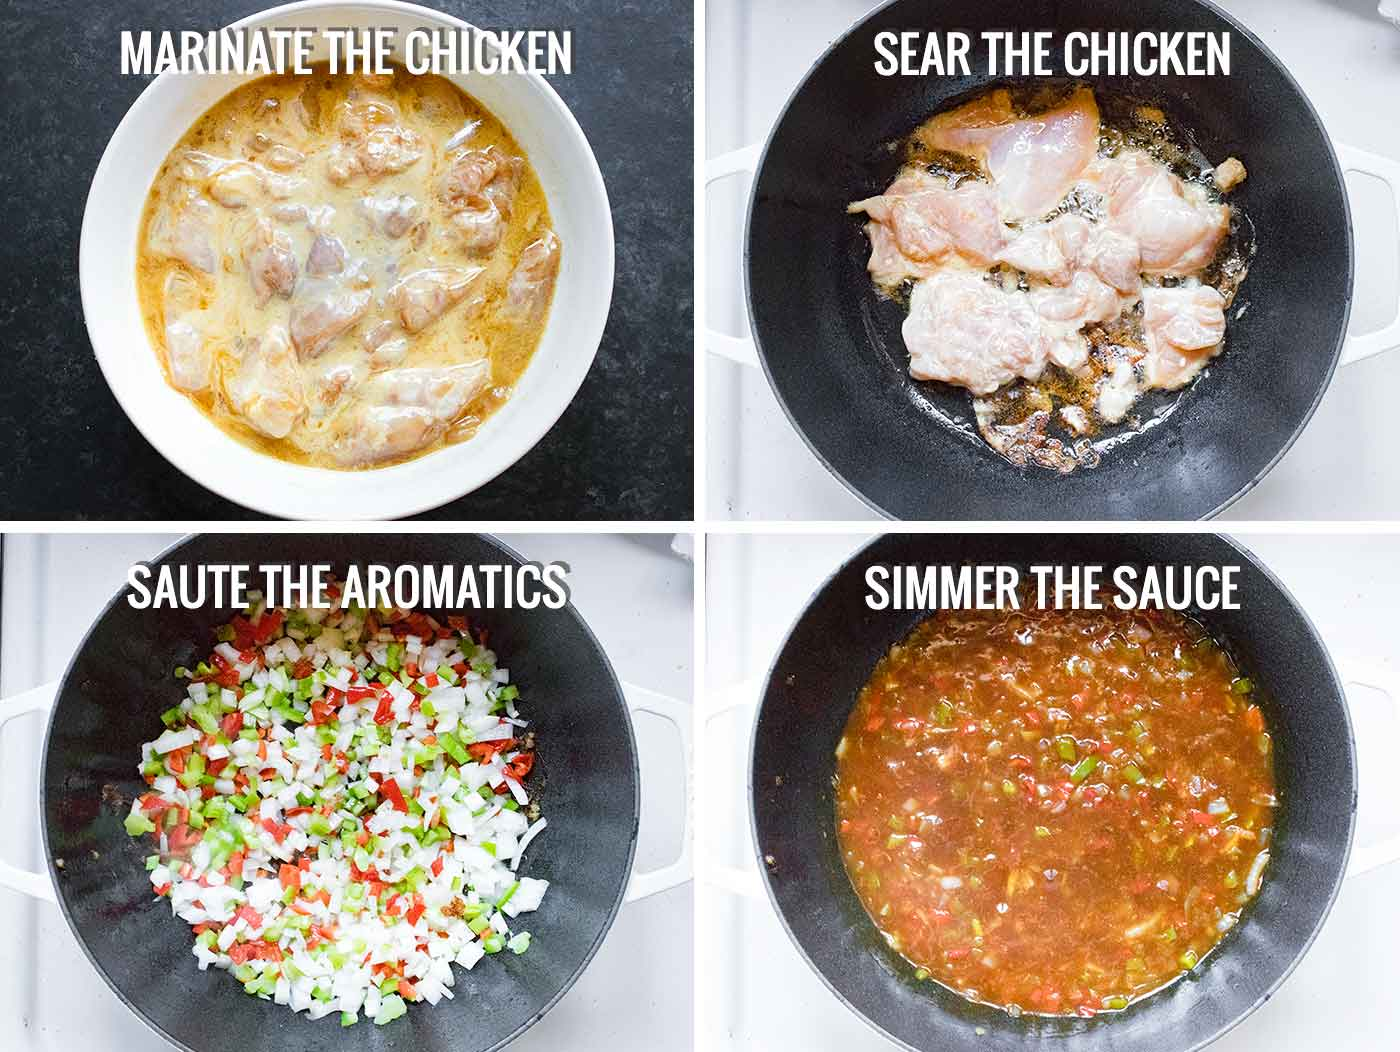 Steps for making General Tso's Chicken Soup